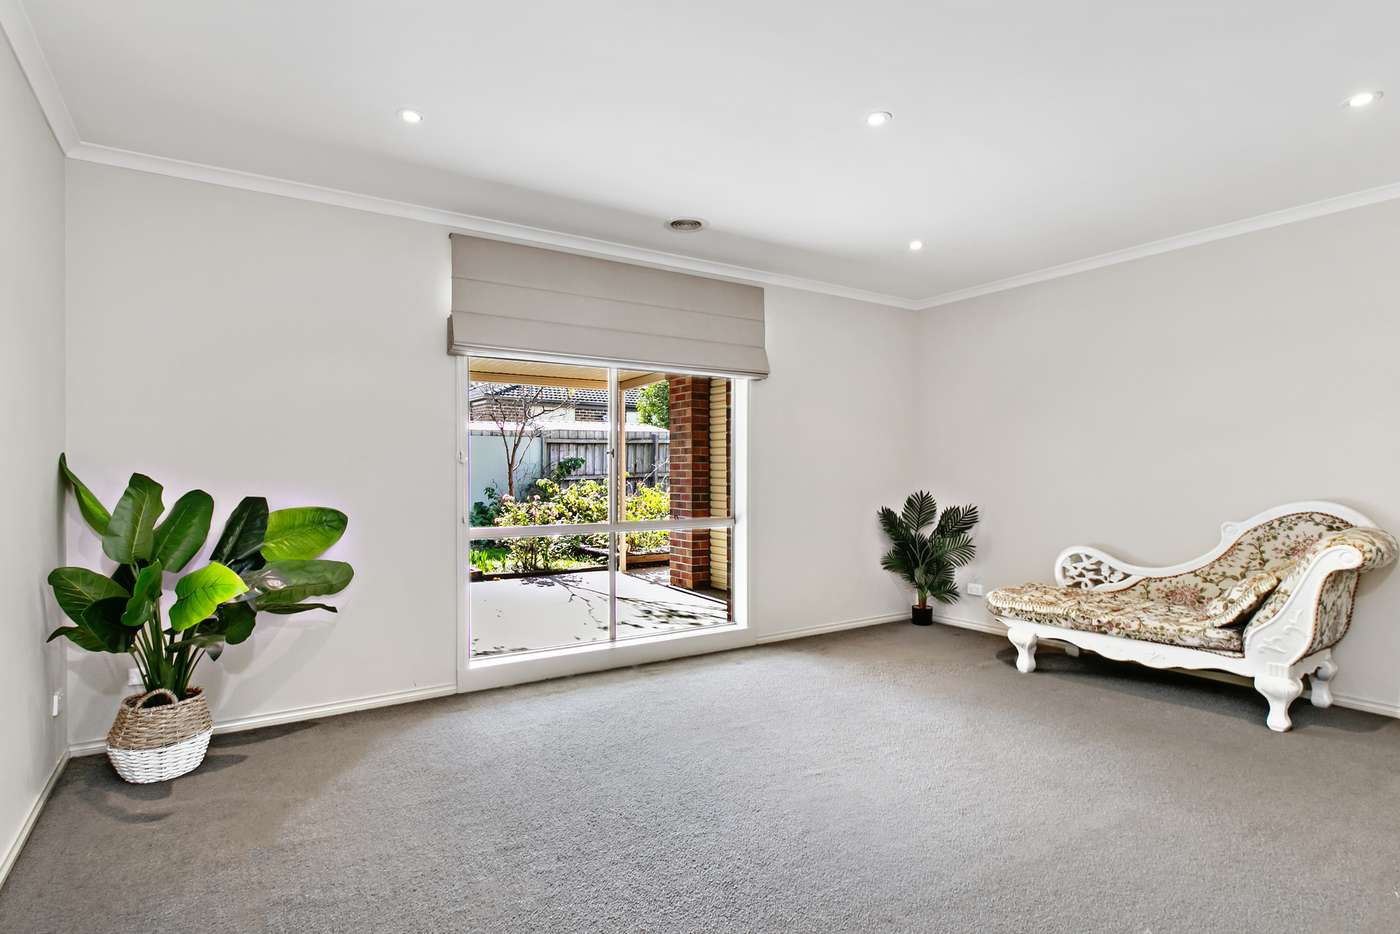 Sixth view of Homely house listing, 4 Cottrell Place, Lynbrook VIC 3975